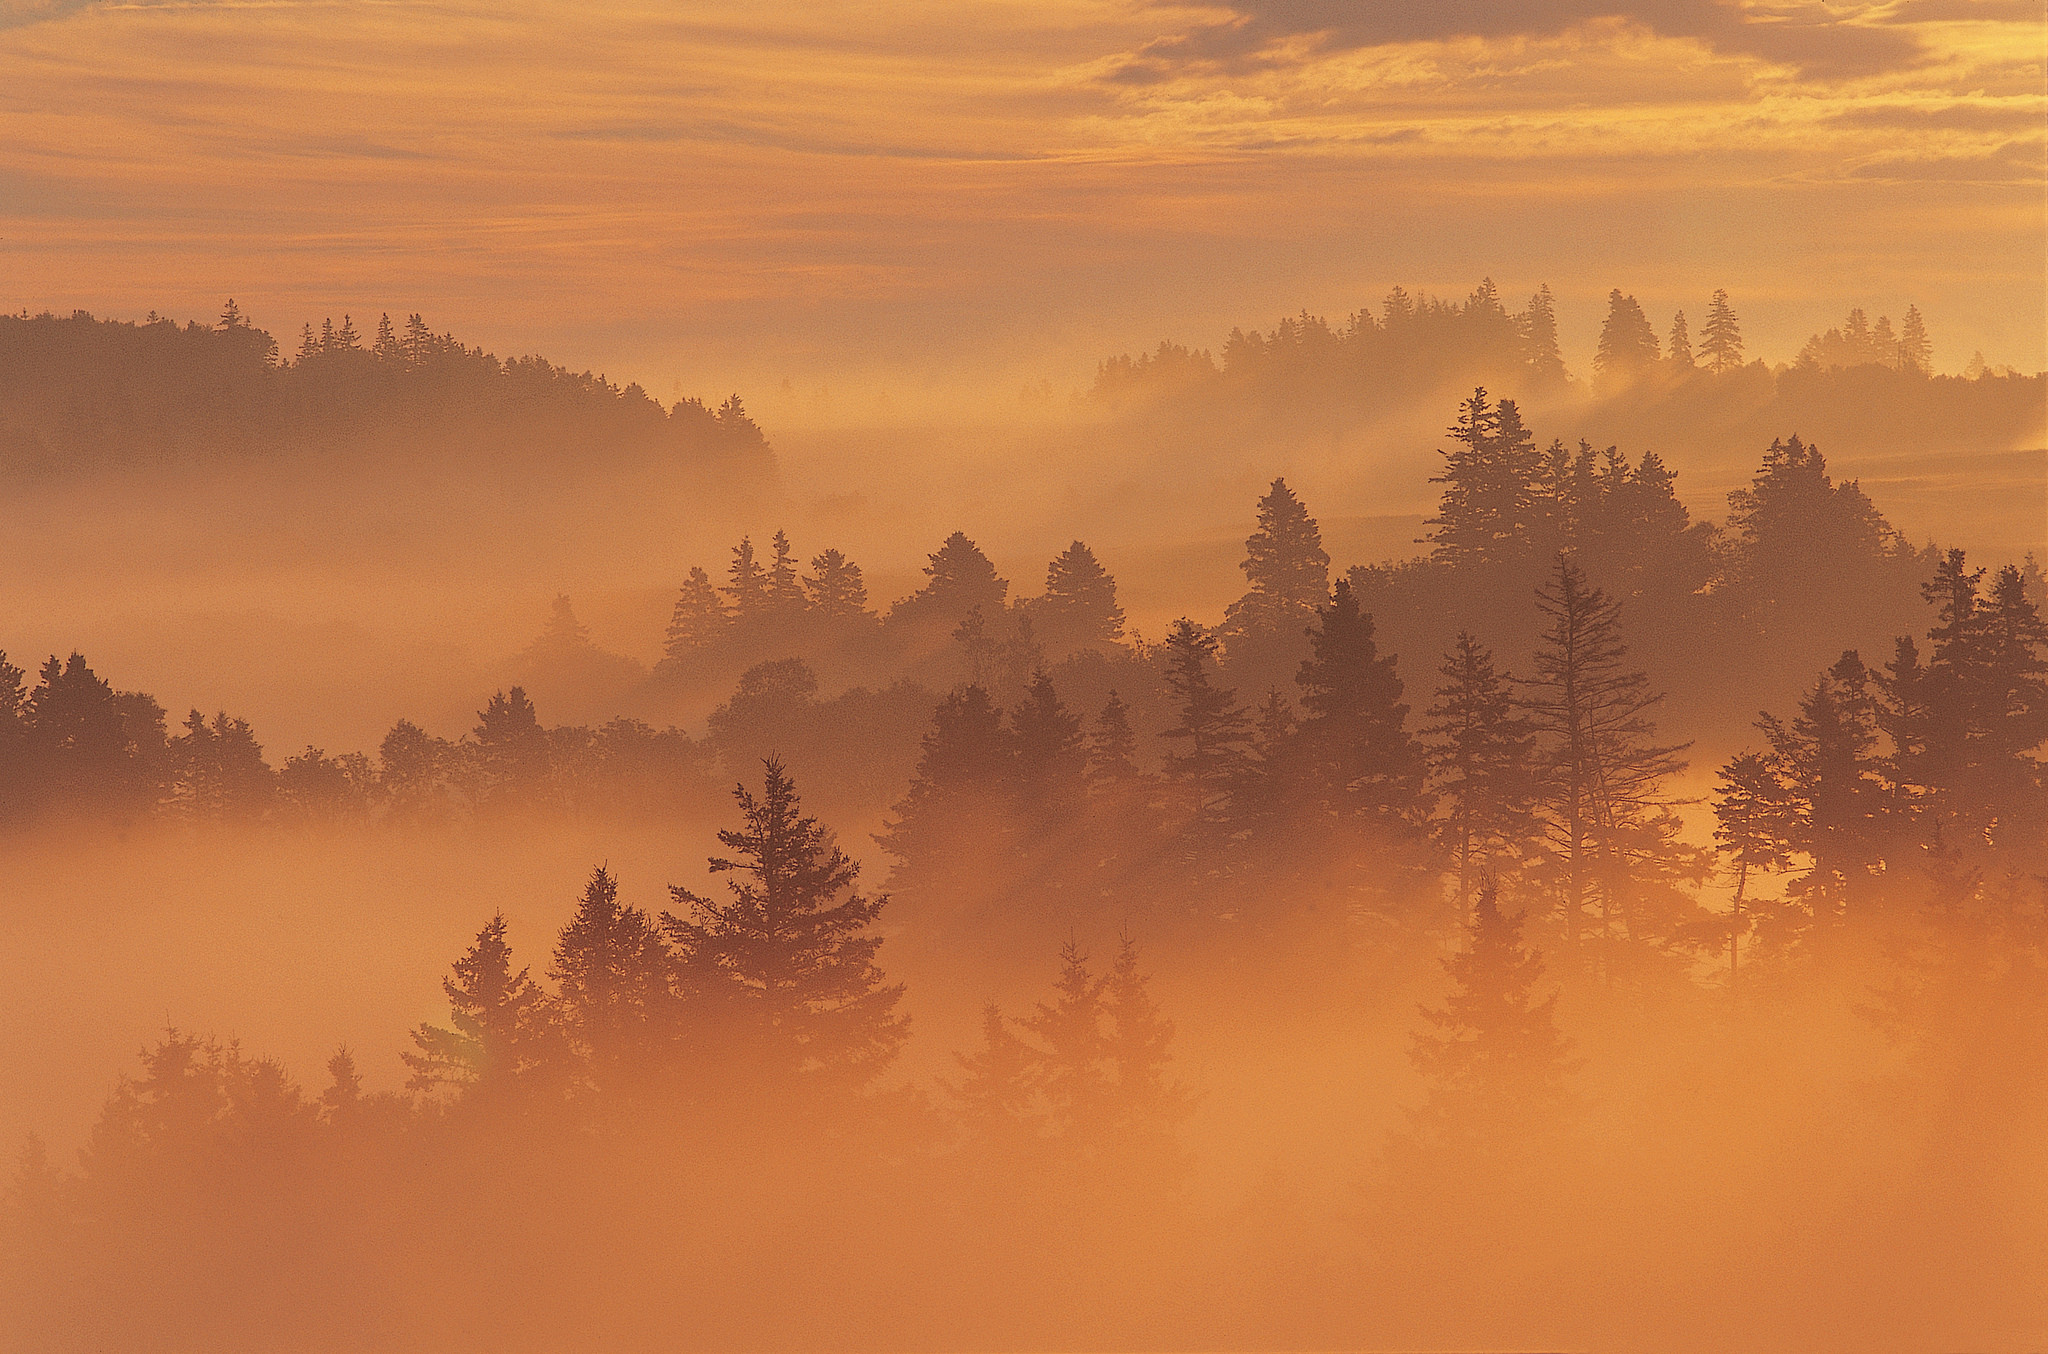 Misty forests